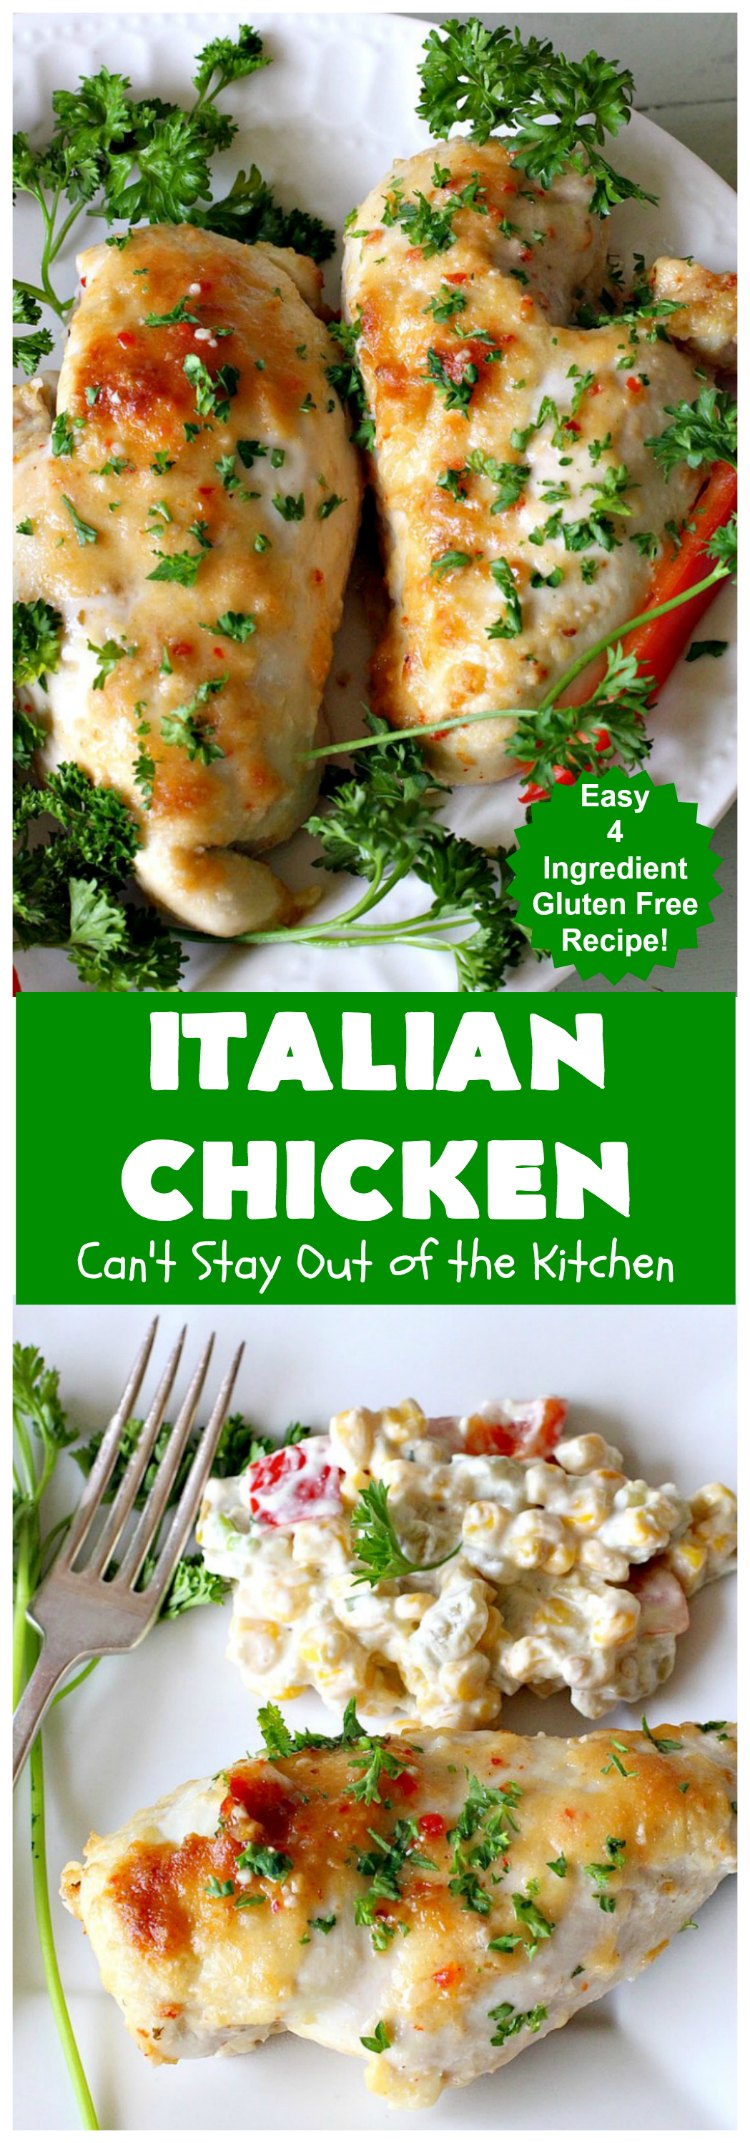 Italian Chicken | Can't Stay Out of the Kitchen | this quick & easy 4-ingredient #chicken entree is perfect for weeknight dinners when you're short on time. Tasty & delicious. #Italian #GlutenFree #ItalianChicken